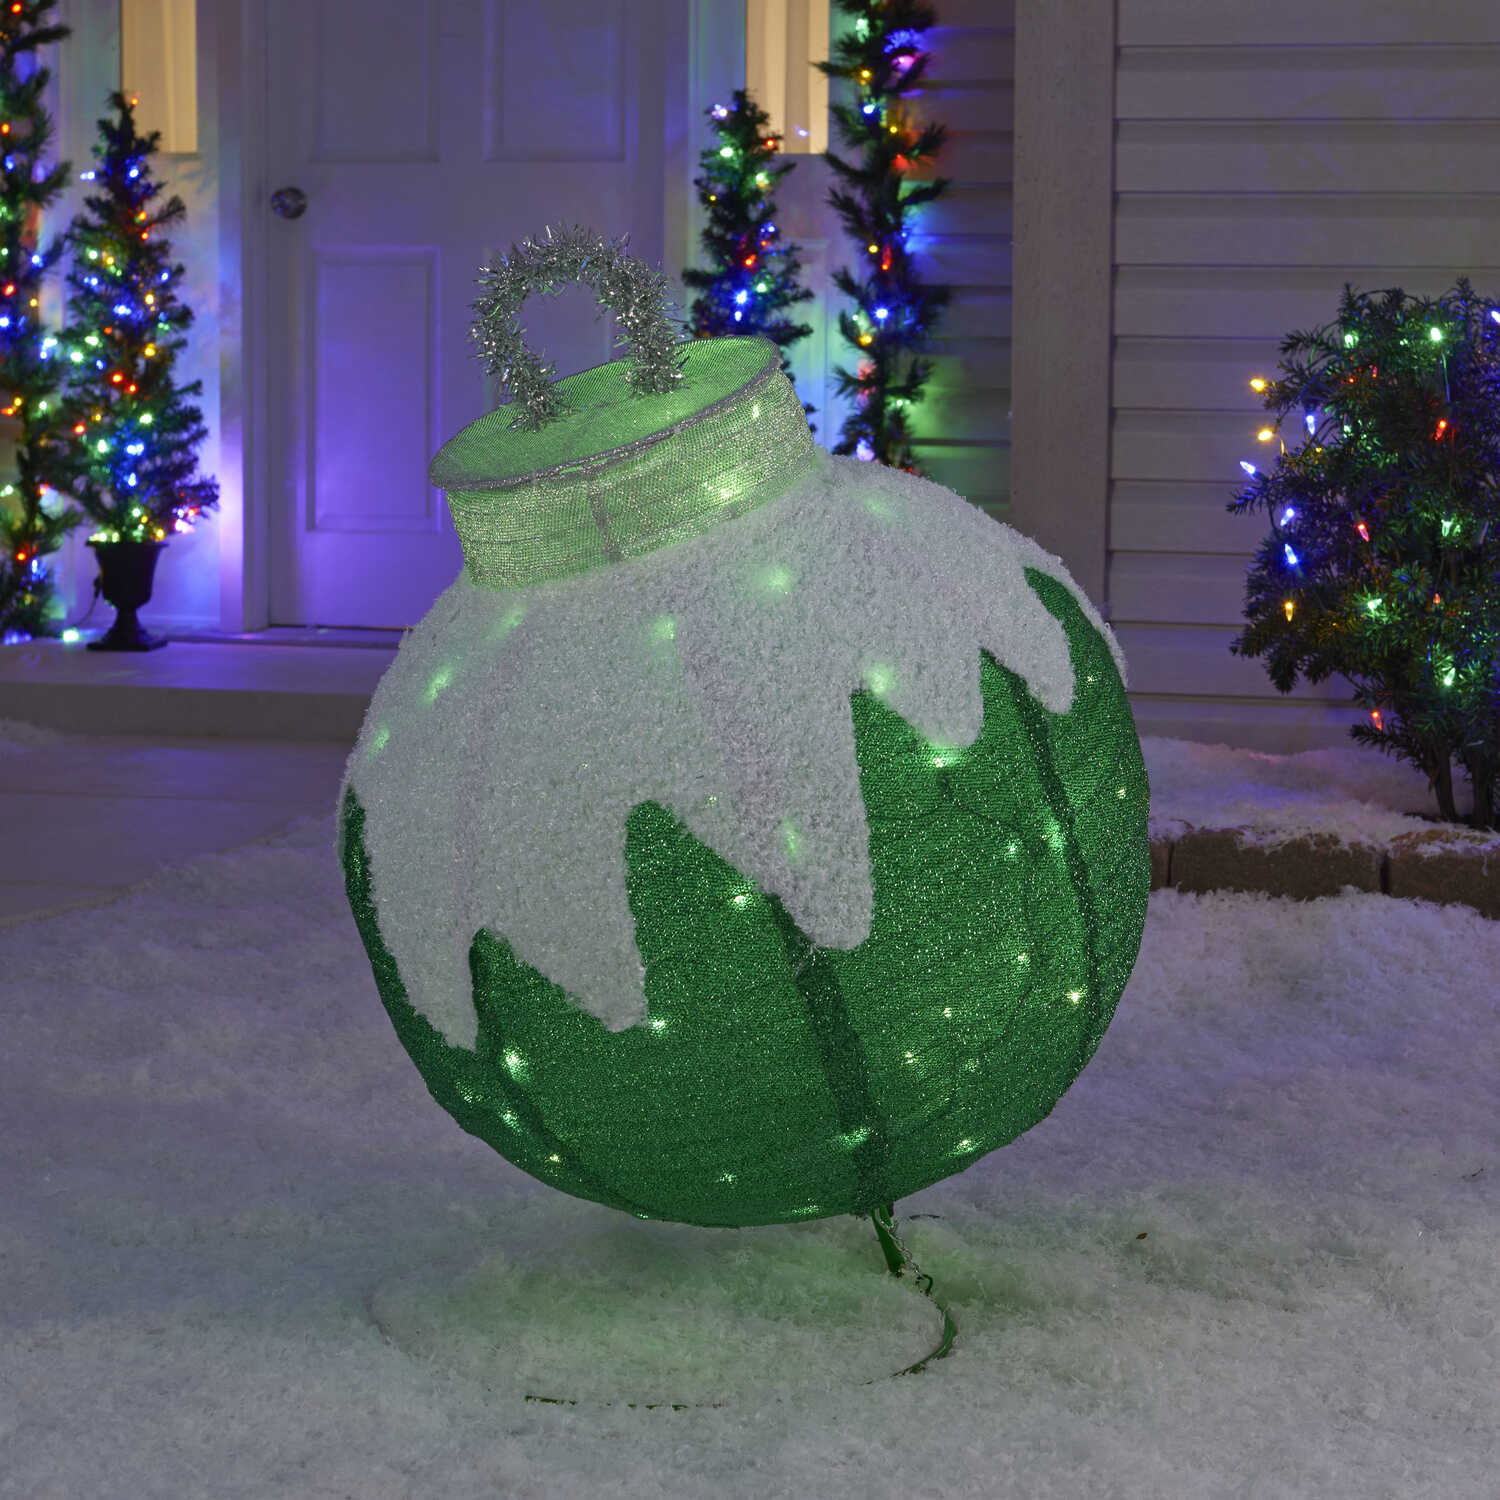 Sylvania  Illuminet  Ornament  LED Yard Art  Green  Mesh  1 pk